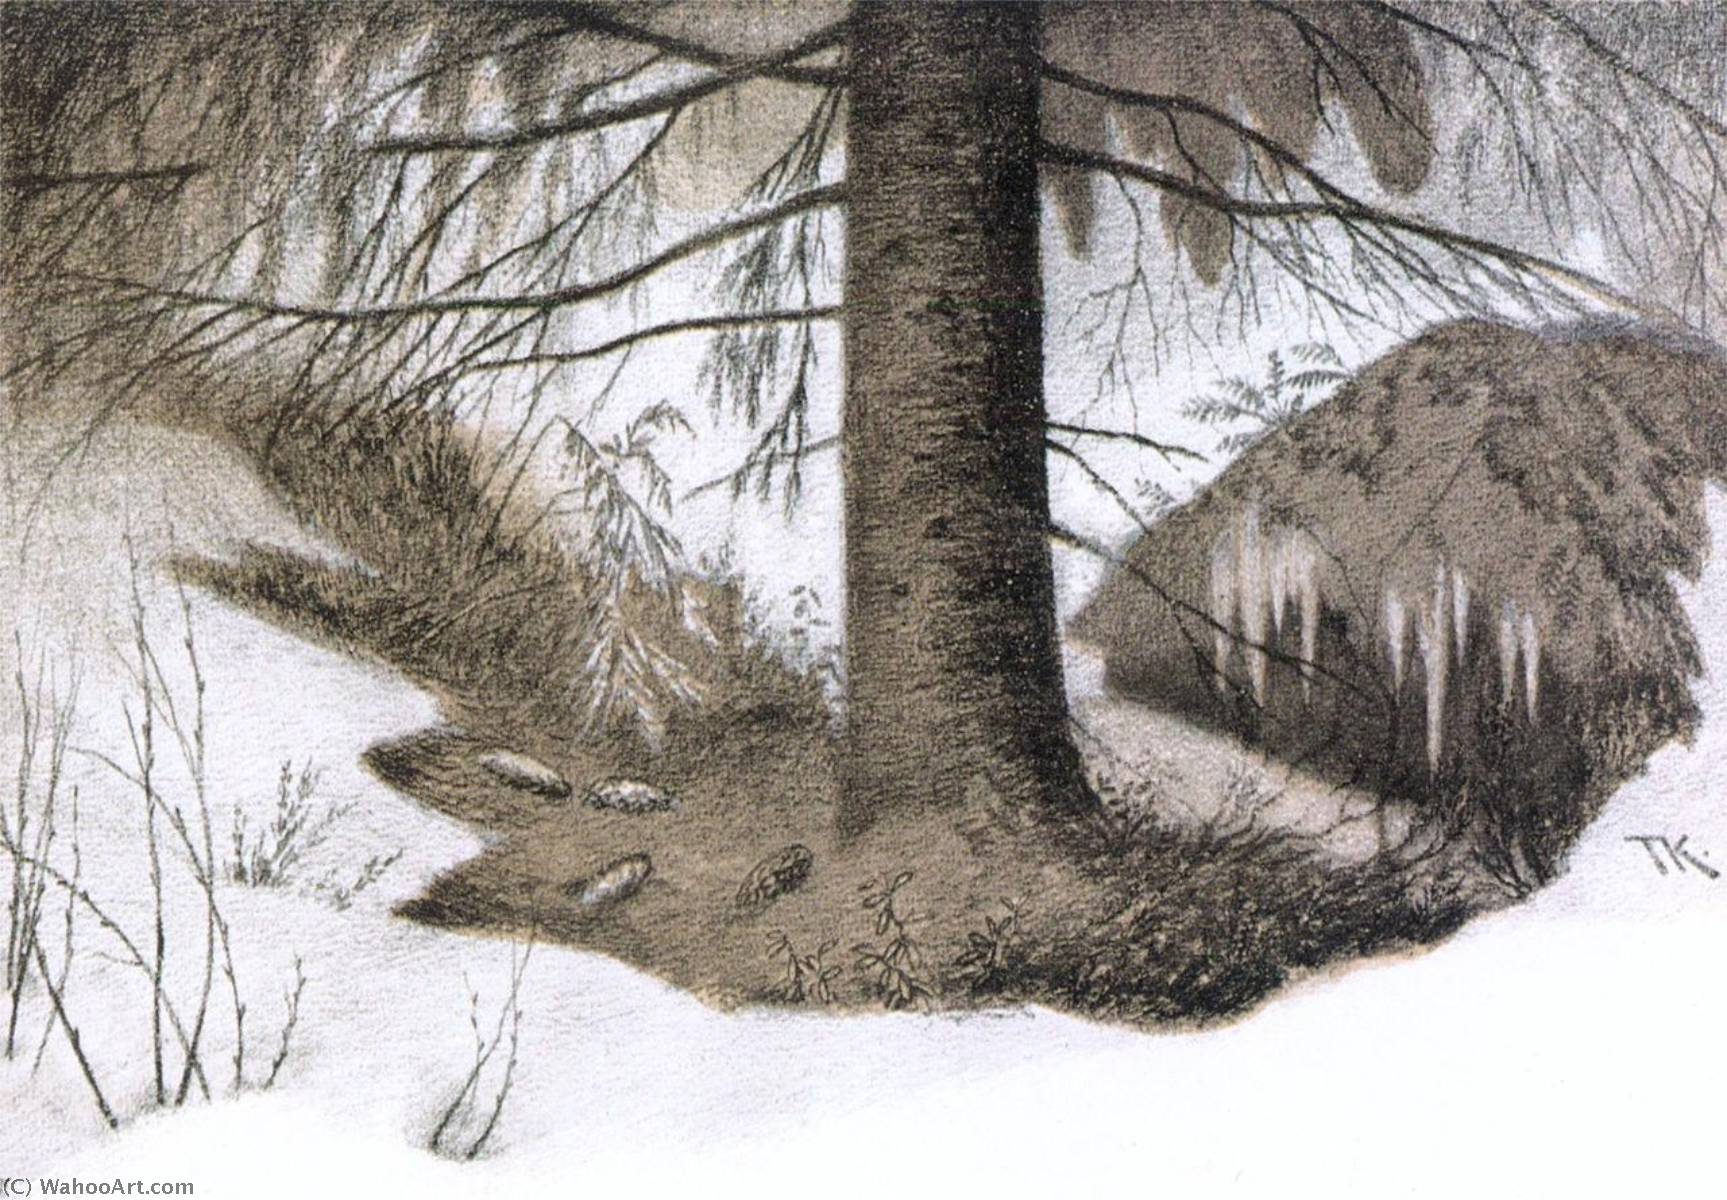 Forest`s Wintergarden, 1901 by Theodor Kittelsen (1857-1914) | Famous Paintings Reproductions | WahooArt.com